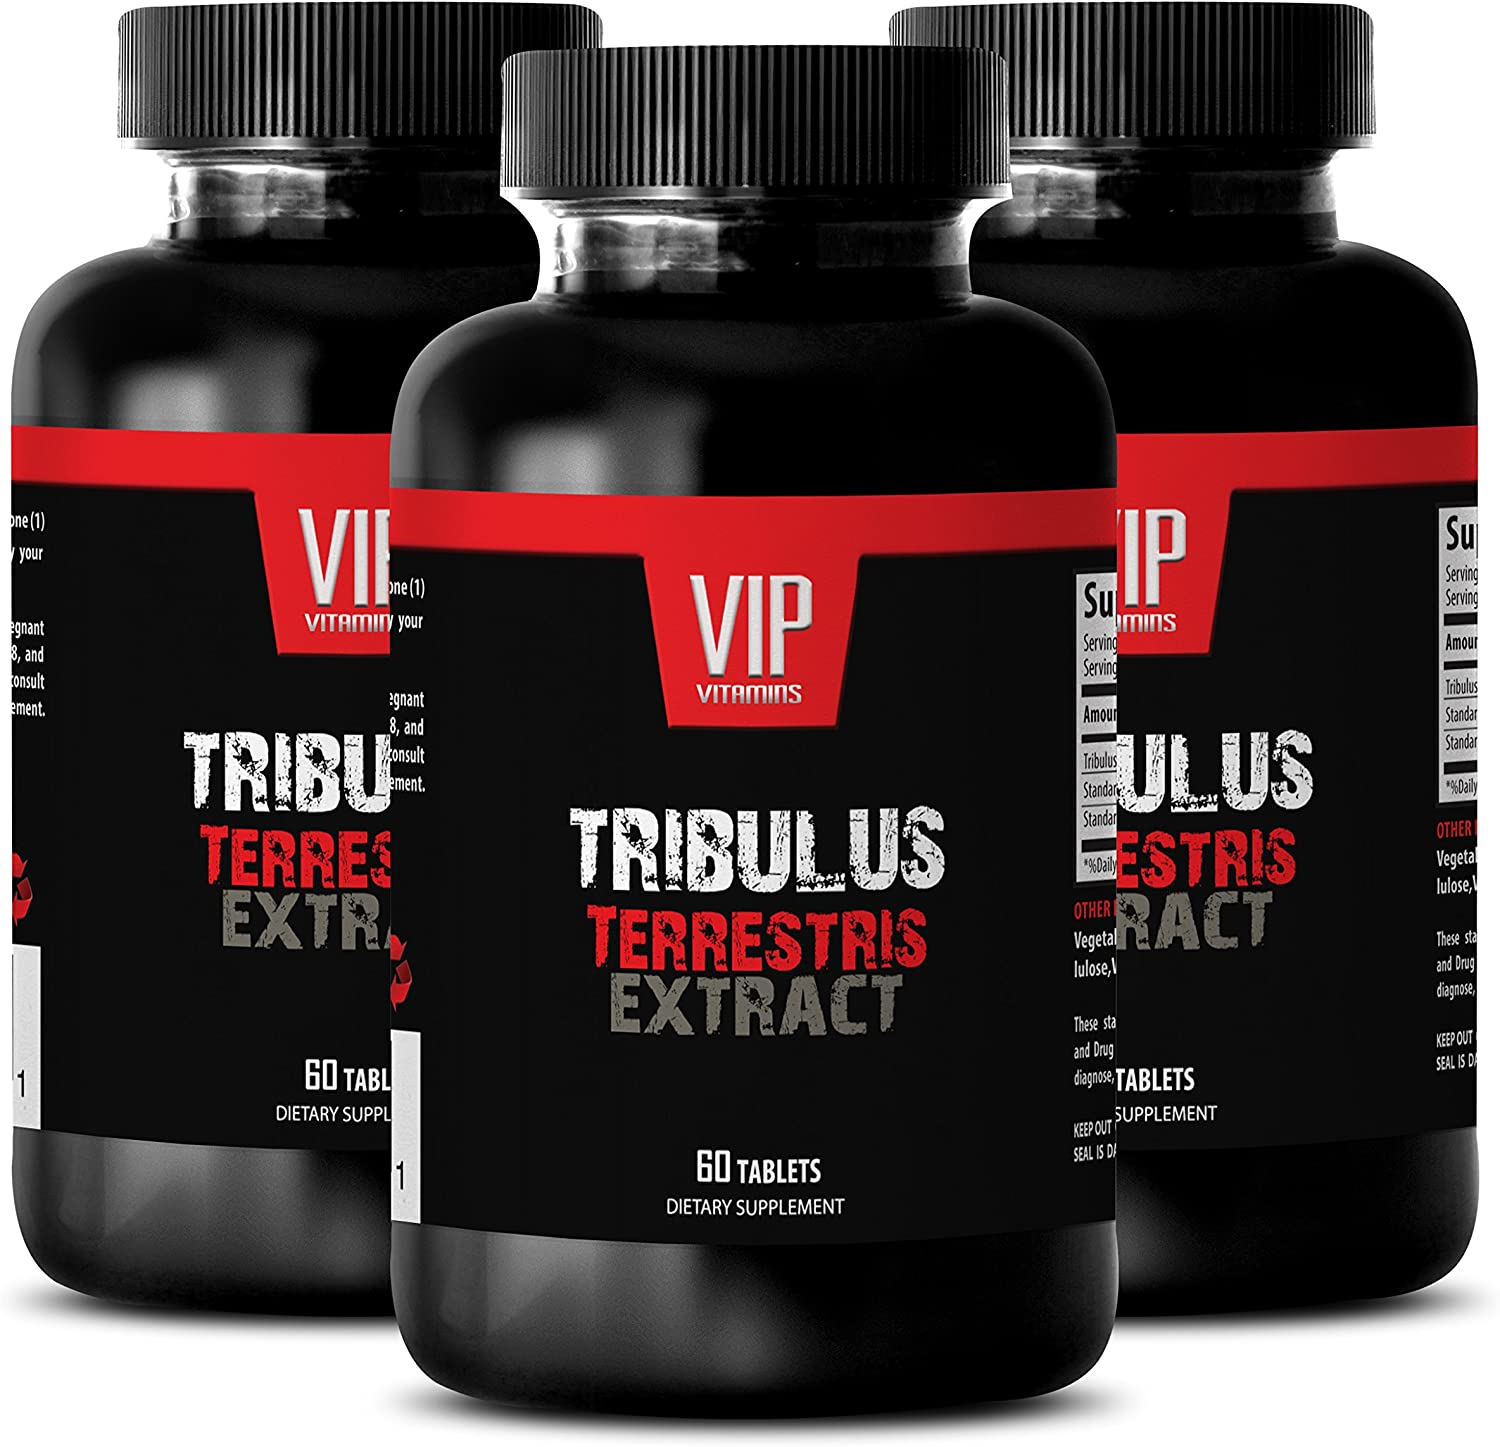 Muscle Recovery Supplements for Men Spasm price - TERRESTRI TRIBULUS Popular product Natural